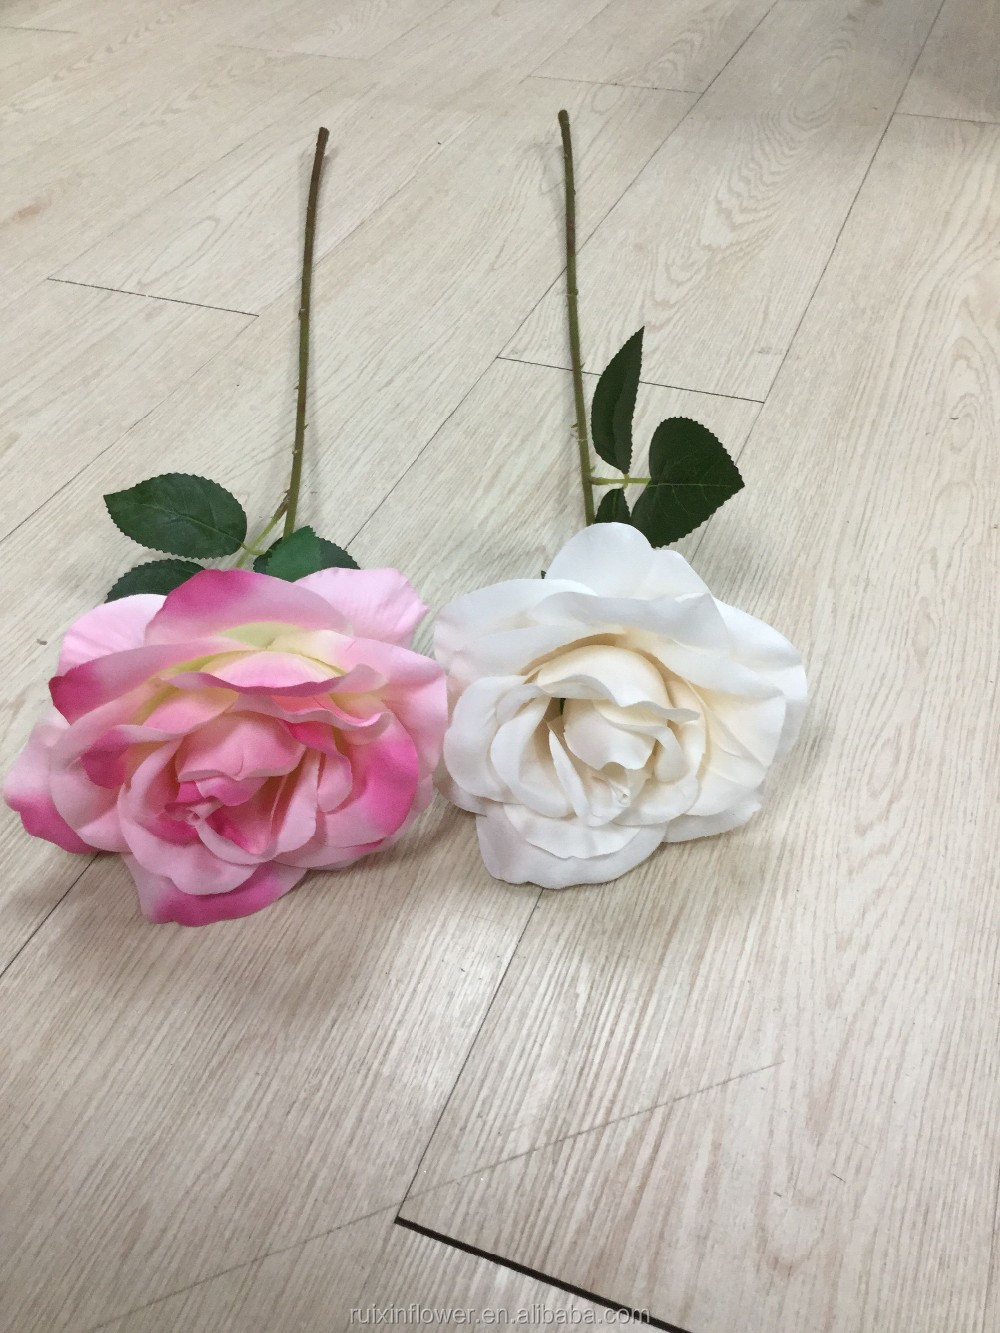 artificial flower single stem rose high quality silk flowers